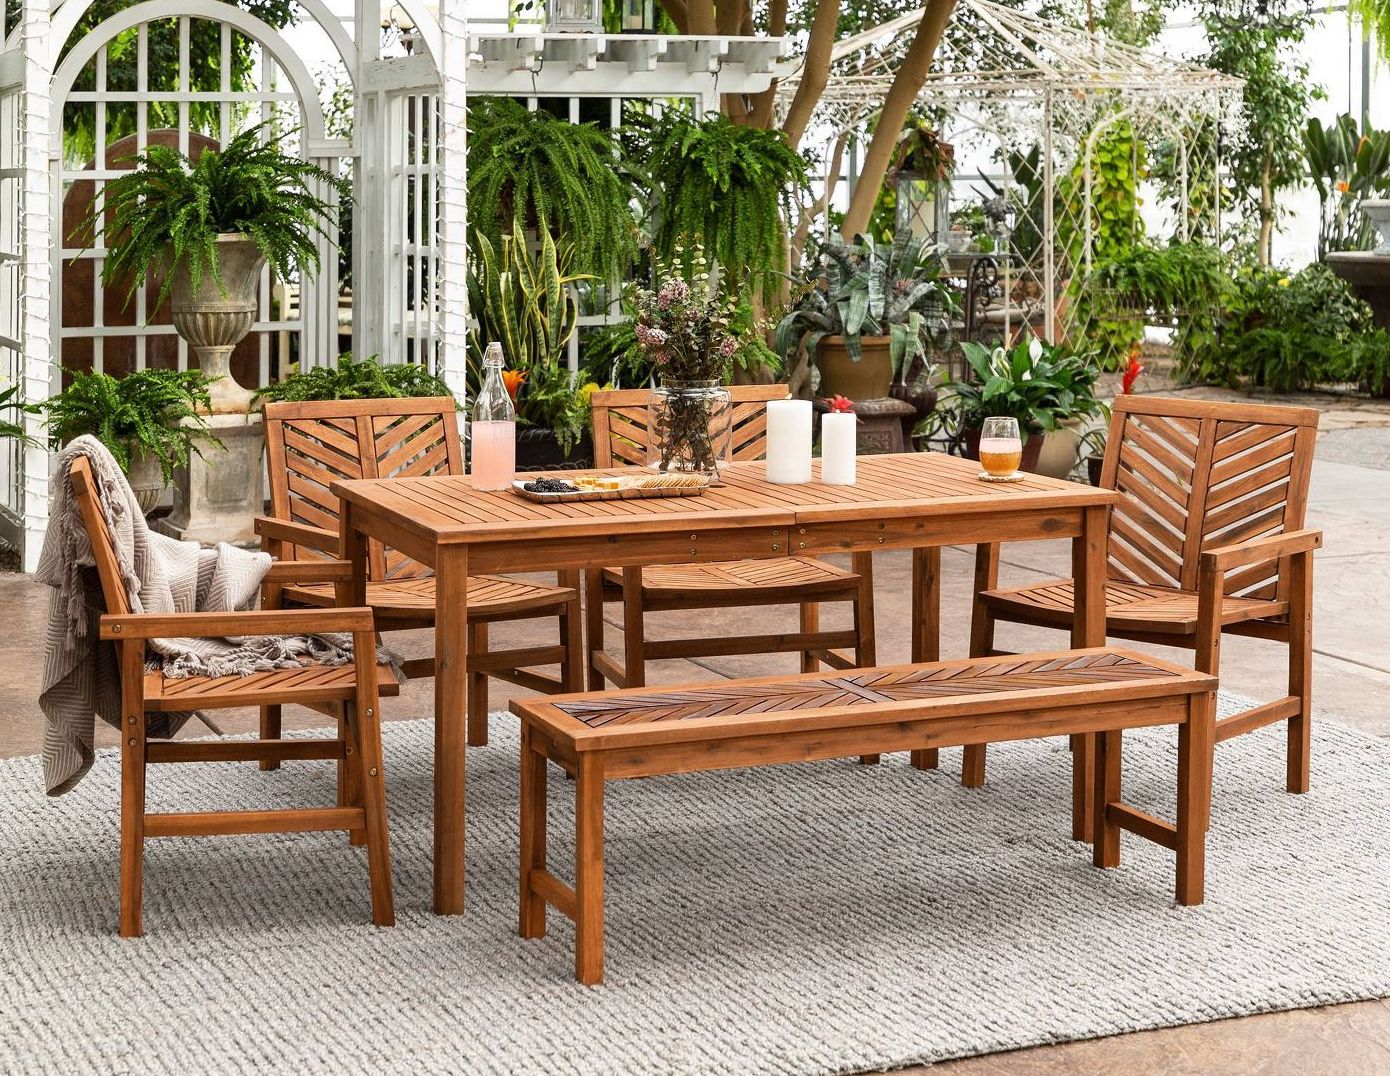 A six-person wood outdoor dining table with four chairs and a bench.